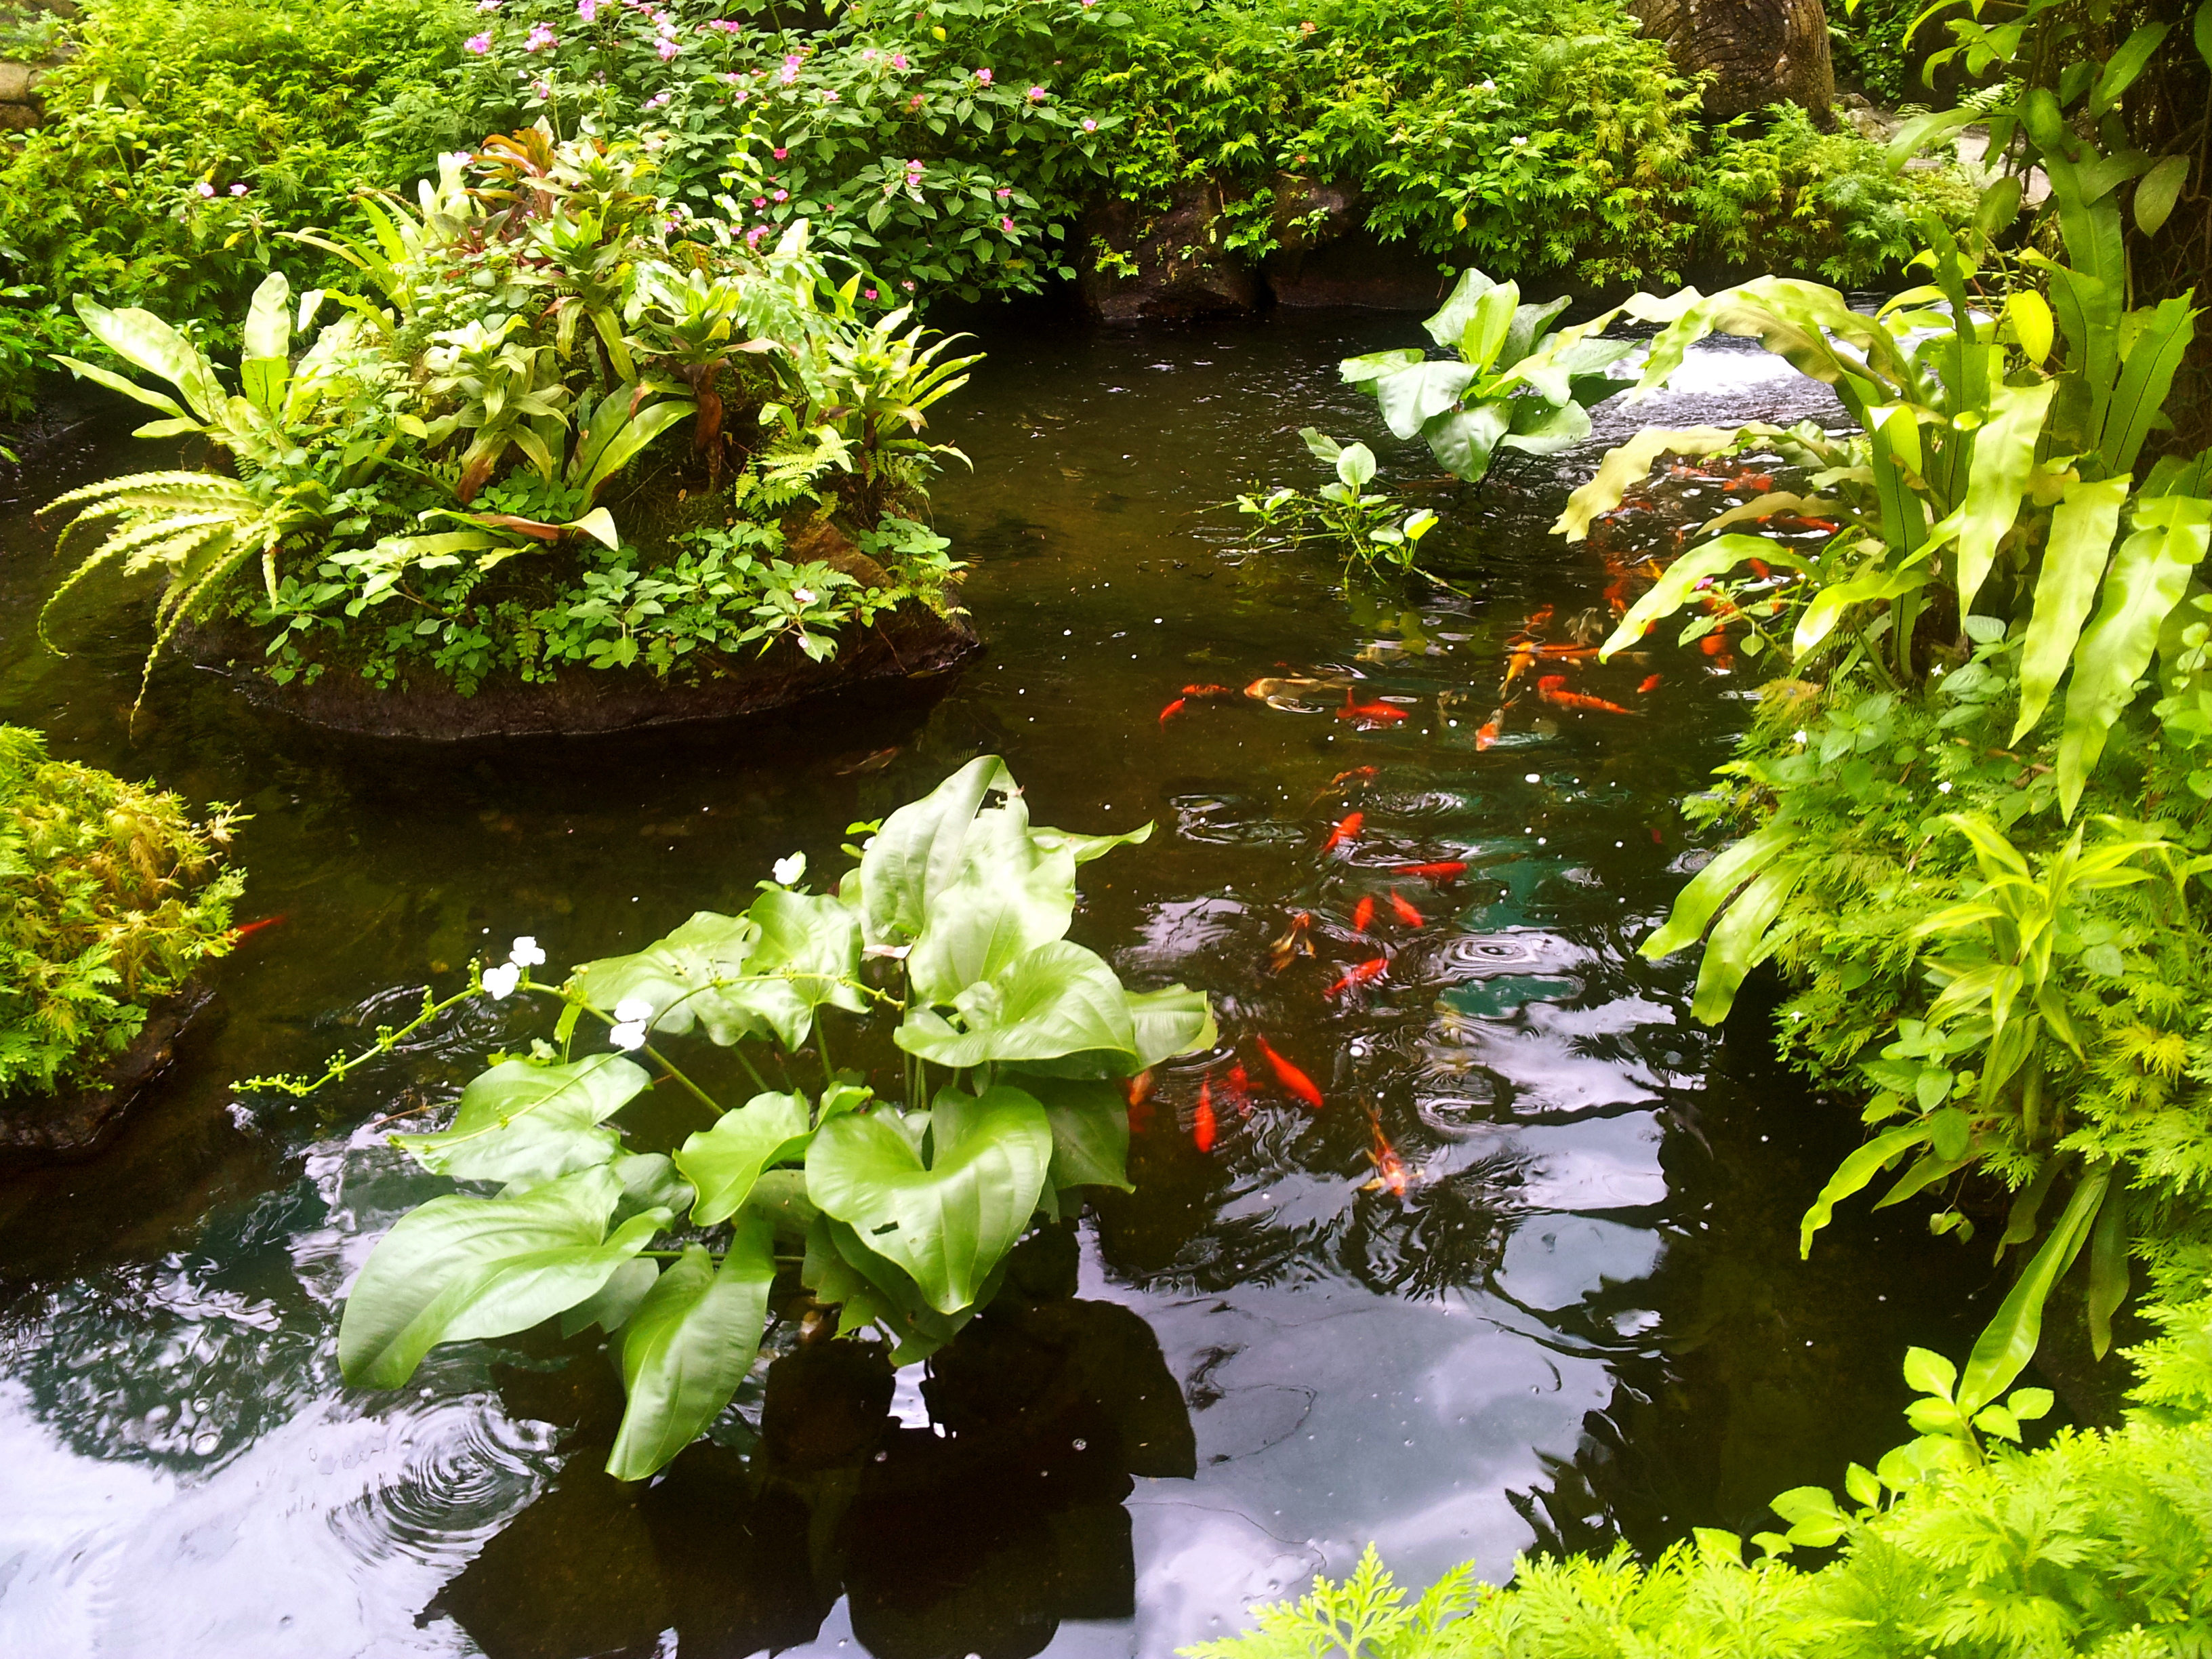 Fish pond in butterfly park kuala lumpur peachbox by dm for Salt in koi pond